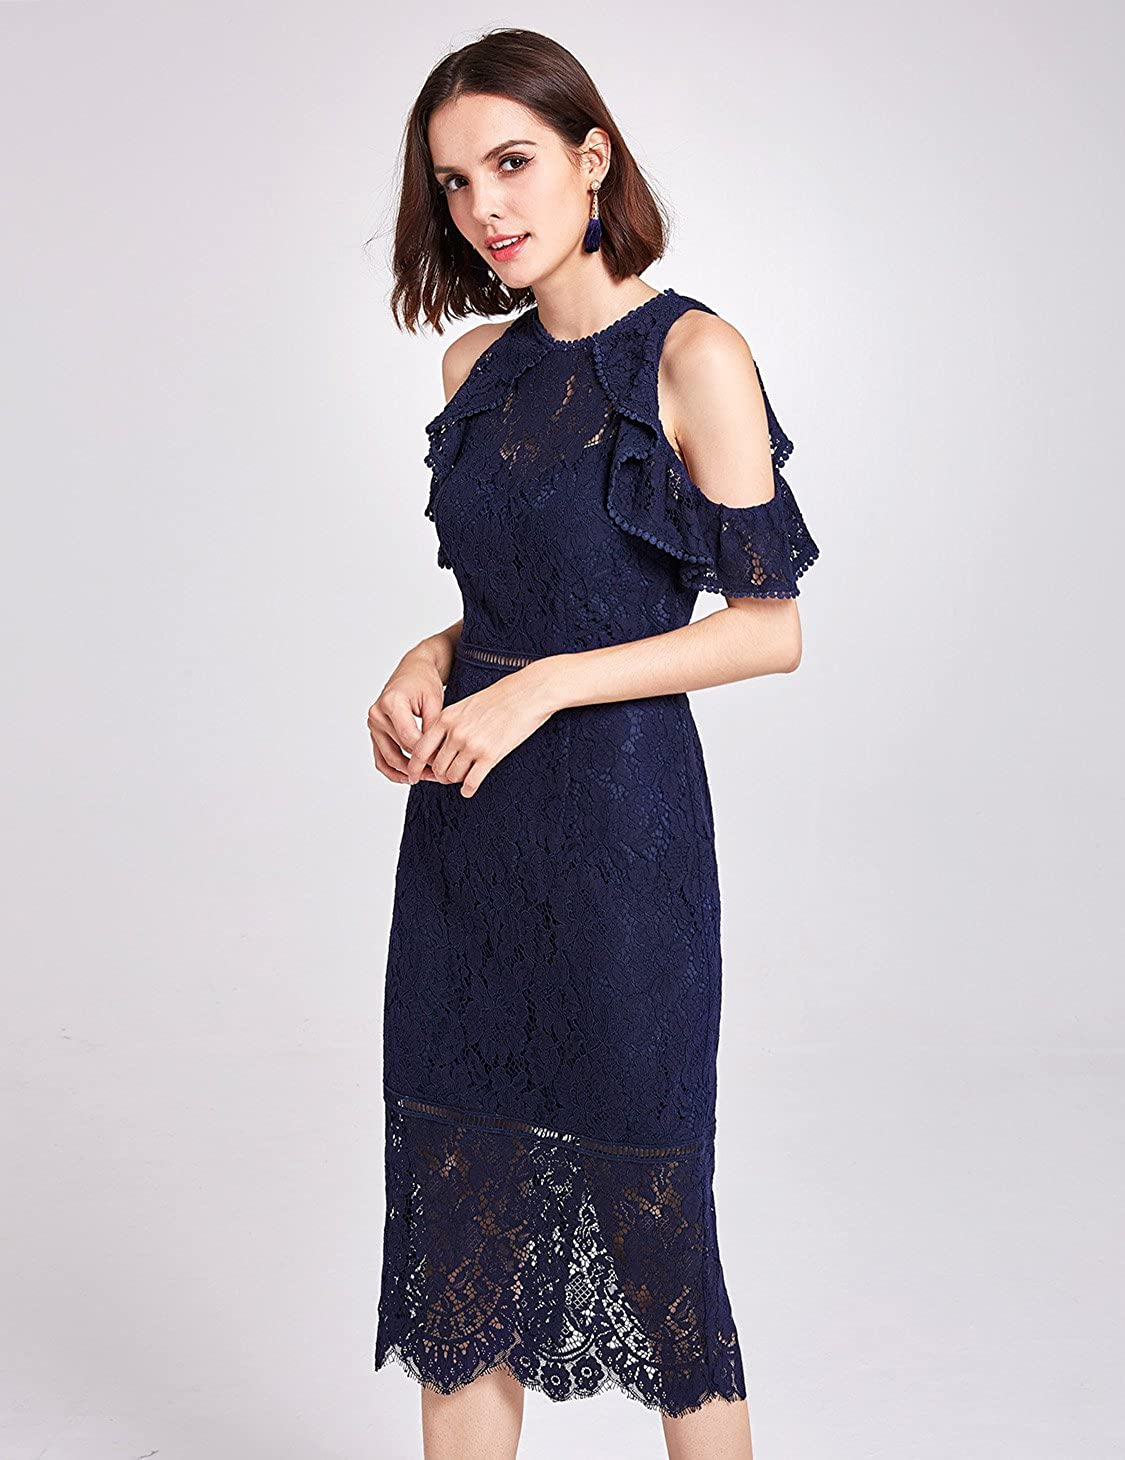 a278c20368d Alisa Pan Cold Shoulder Slim Fit Floral Lace Dress 05920 at Amazon Women s  Clothing store